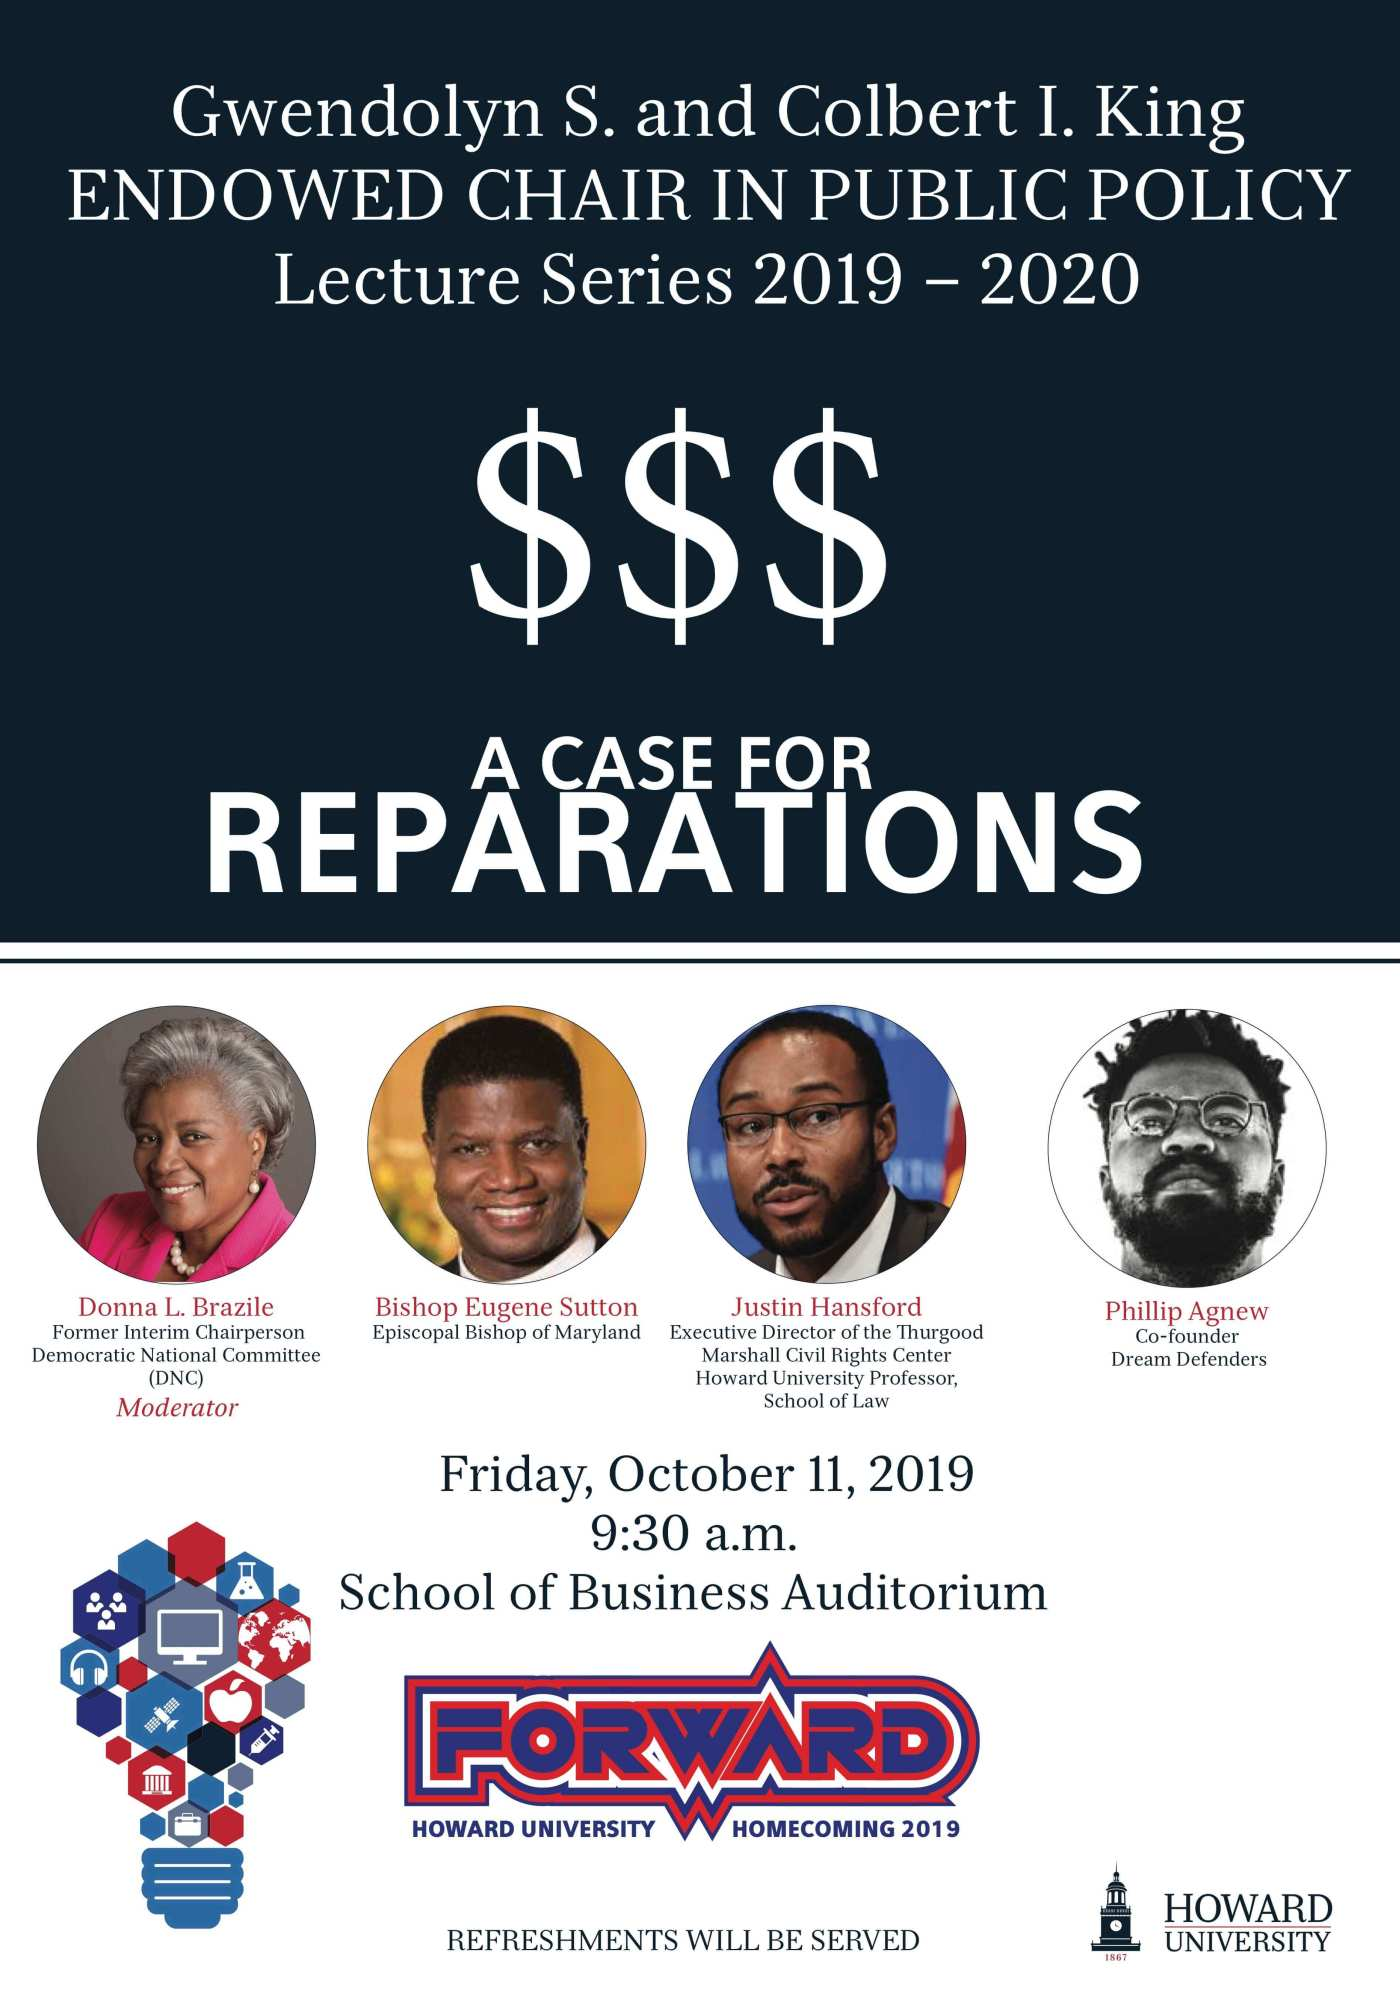 King Lecture Series : The Case for Reparations at Howard University HU Ideas Symposium on Oct 11 at 9:30am